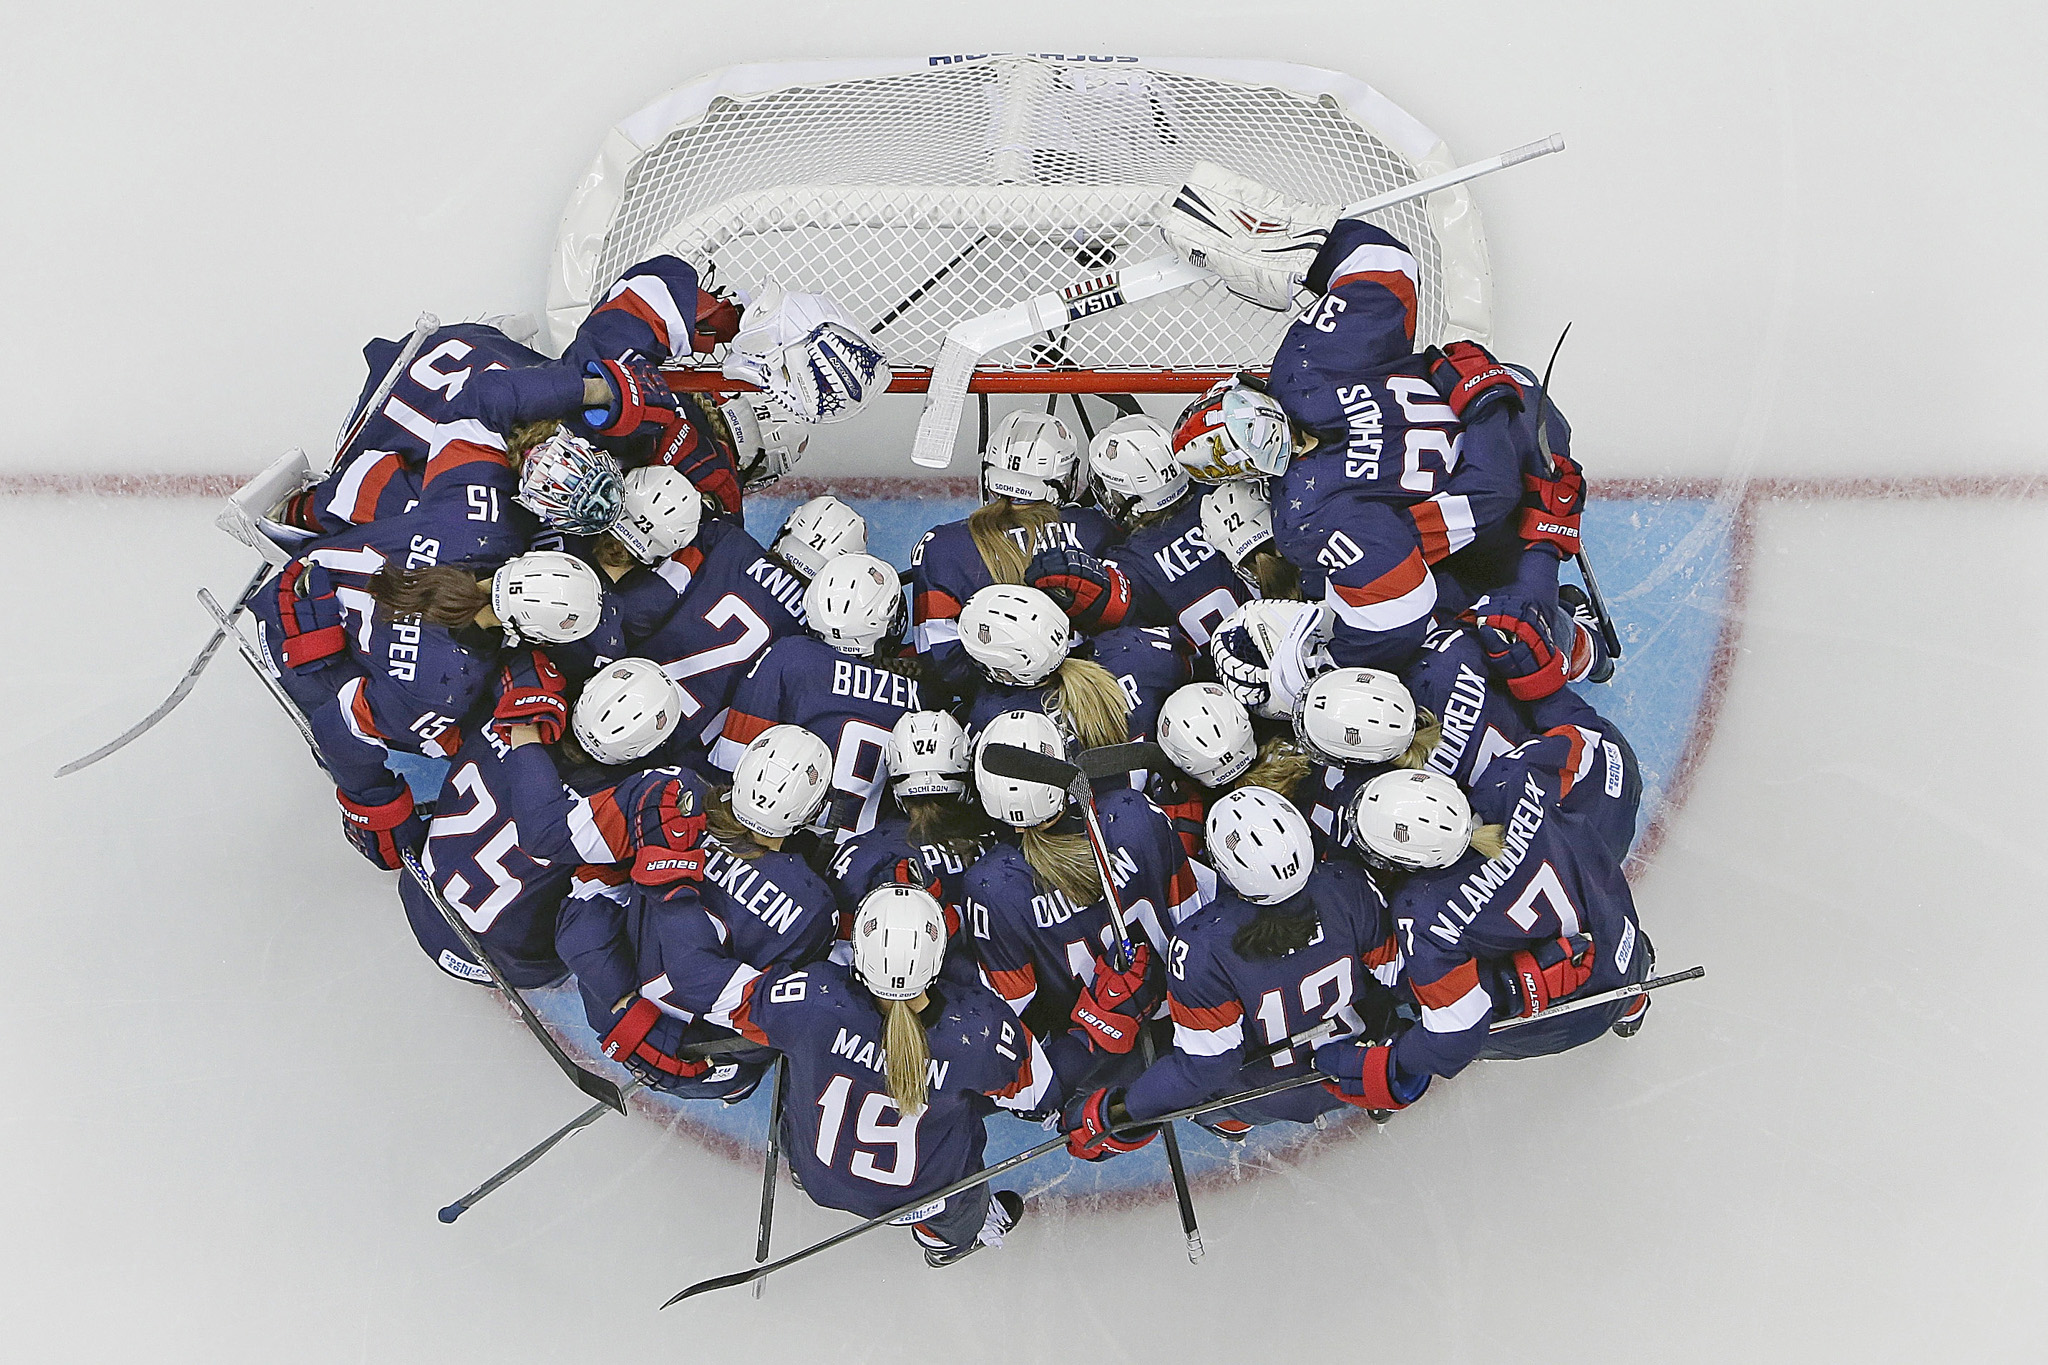 Team USA huddles around the net before the game against Switzerland during the 2014 Winter Olympics women's ice hockey game at Shayba Arena, Monday, Feb. 10, 2014, in Sochi, Russia. (AP Photo/Matt Slocum )